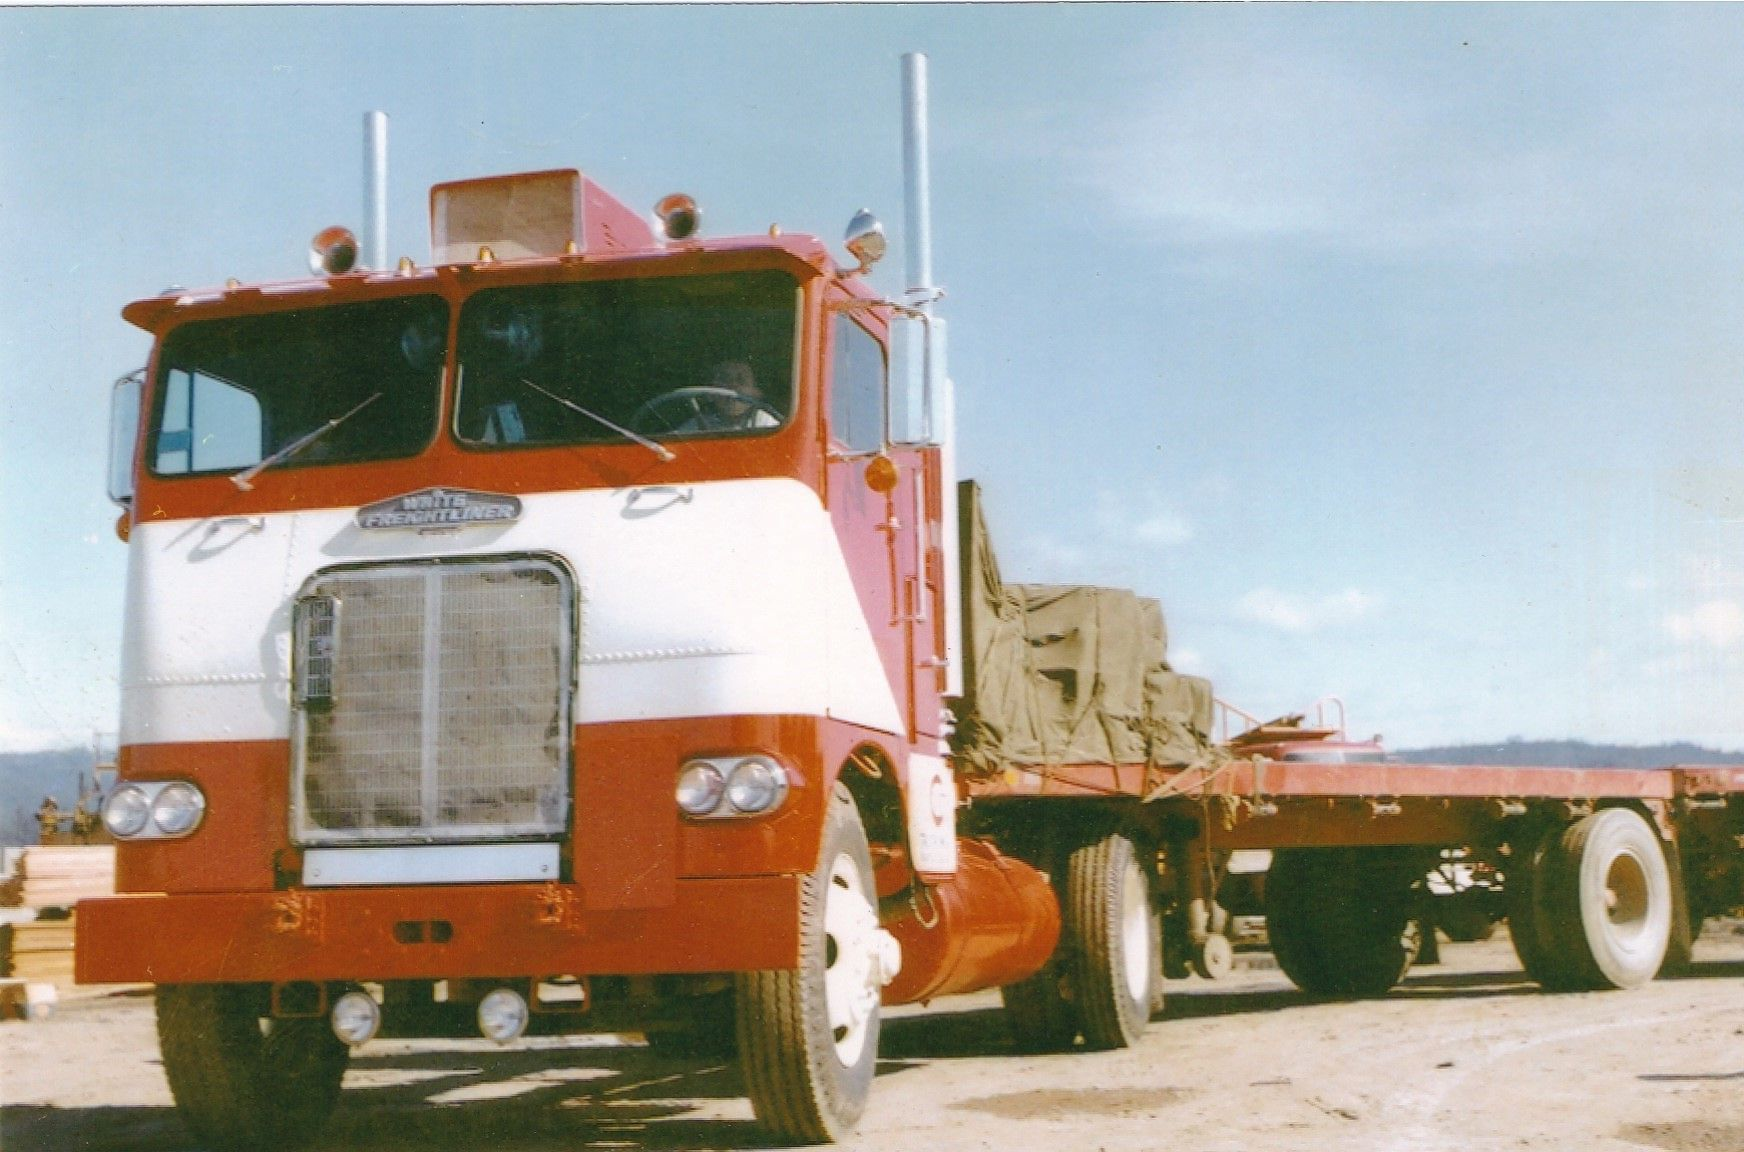 My Dad S Brand New 1961 Freightliner Powered By A Cummins V8 265 Freightliner Cool Trucks Old Trucks